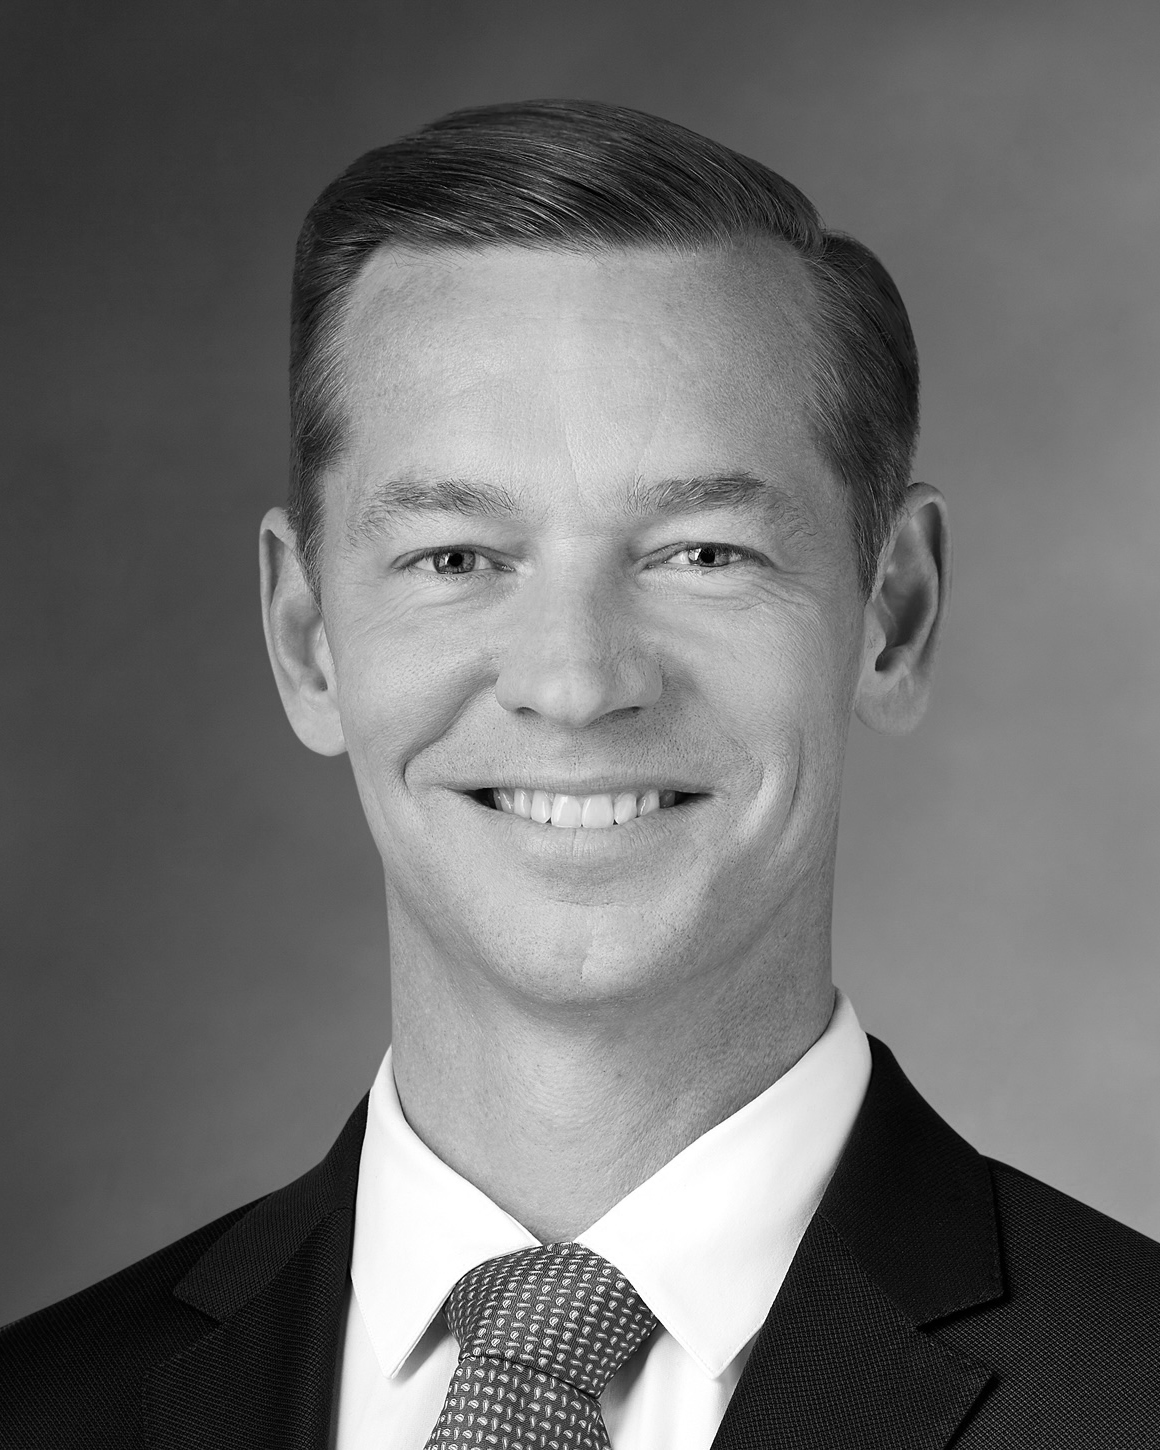 Chris Kempczinski